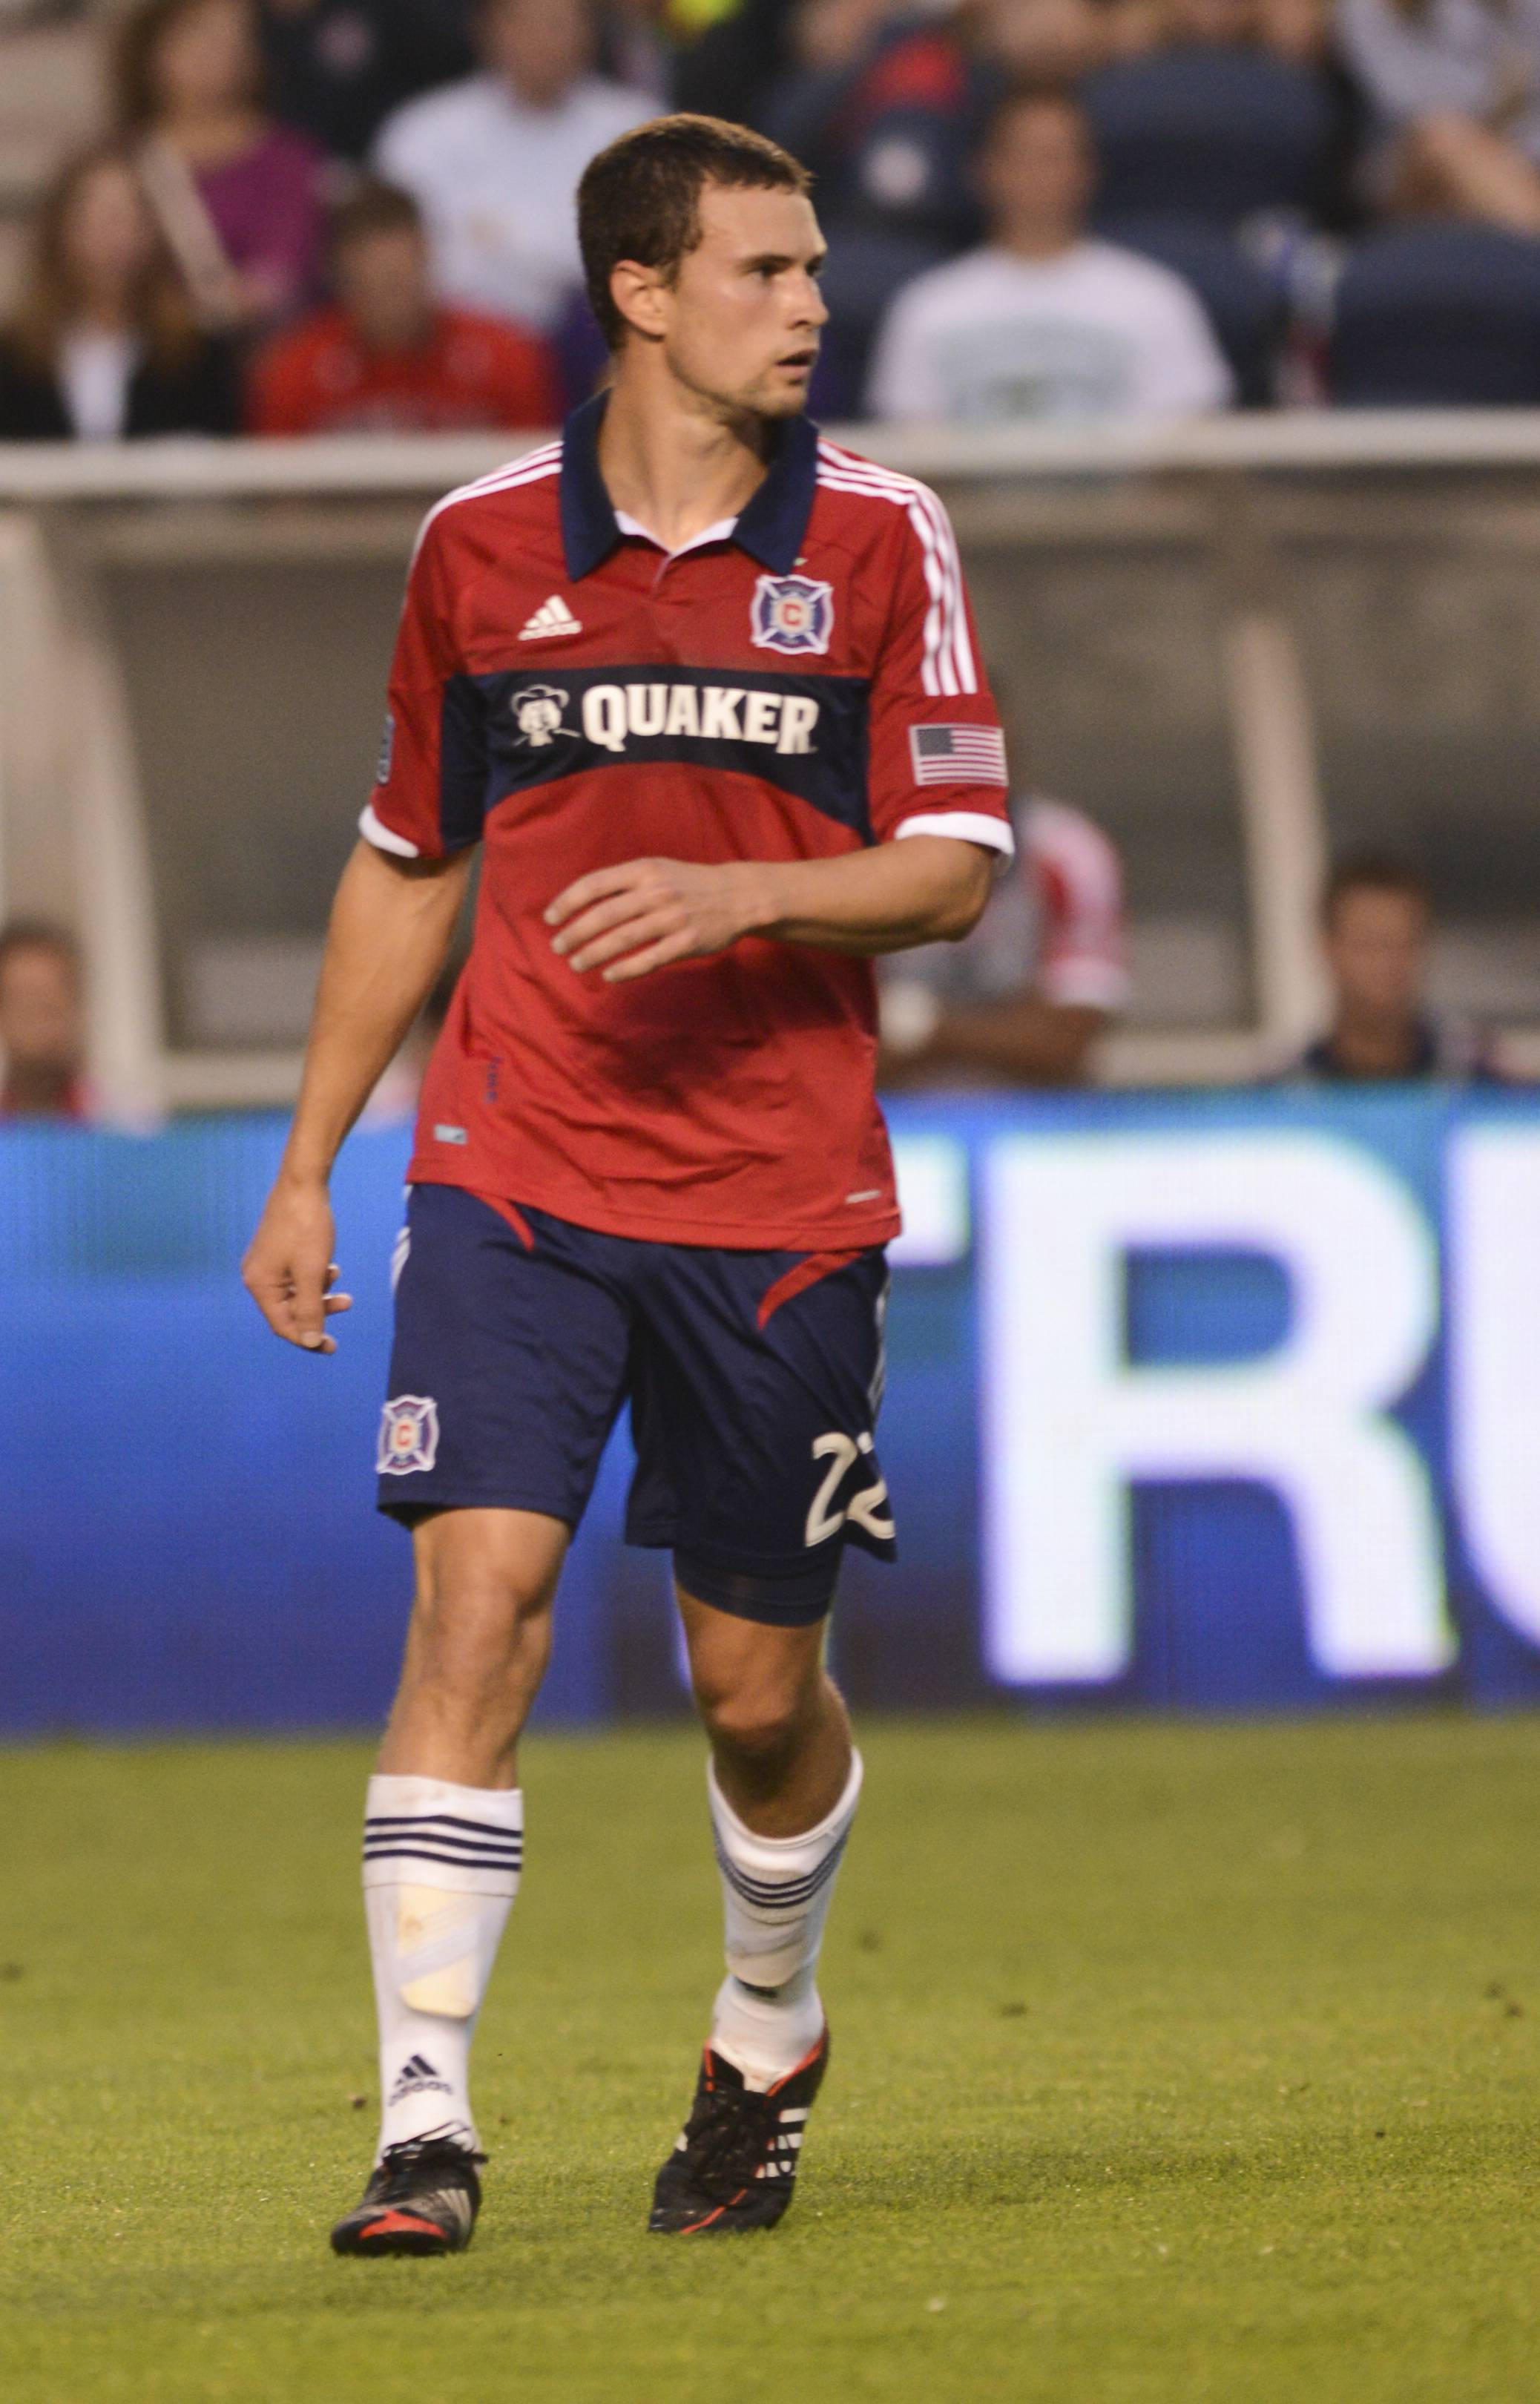 Austin Berry, who won Rookie of the Year honors with the Chicago Fire in 2012, is now a member of the Philadelphia Union. Fire officials made the trade to get under the salary cap.